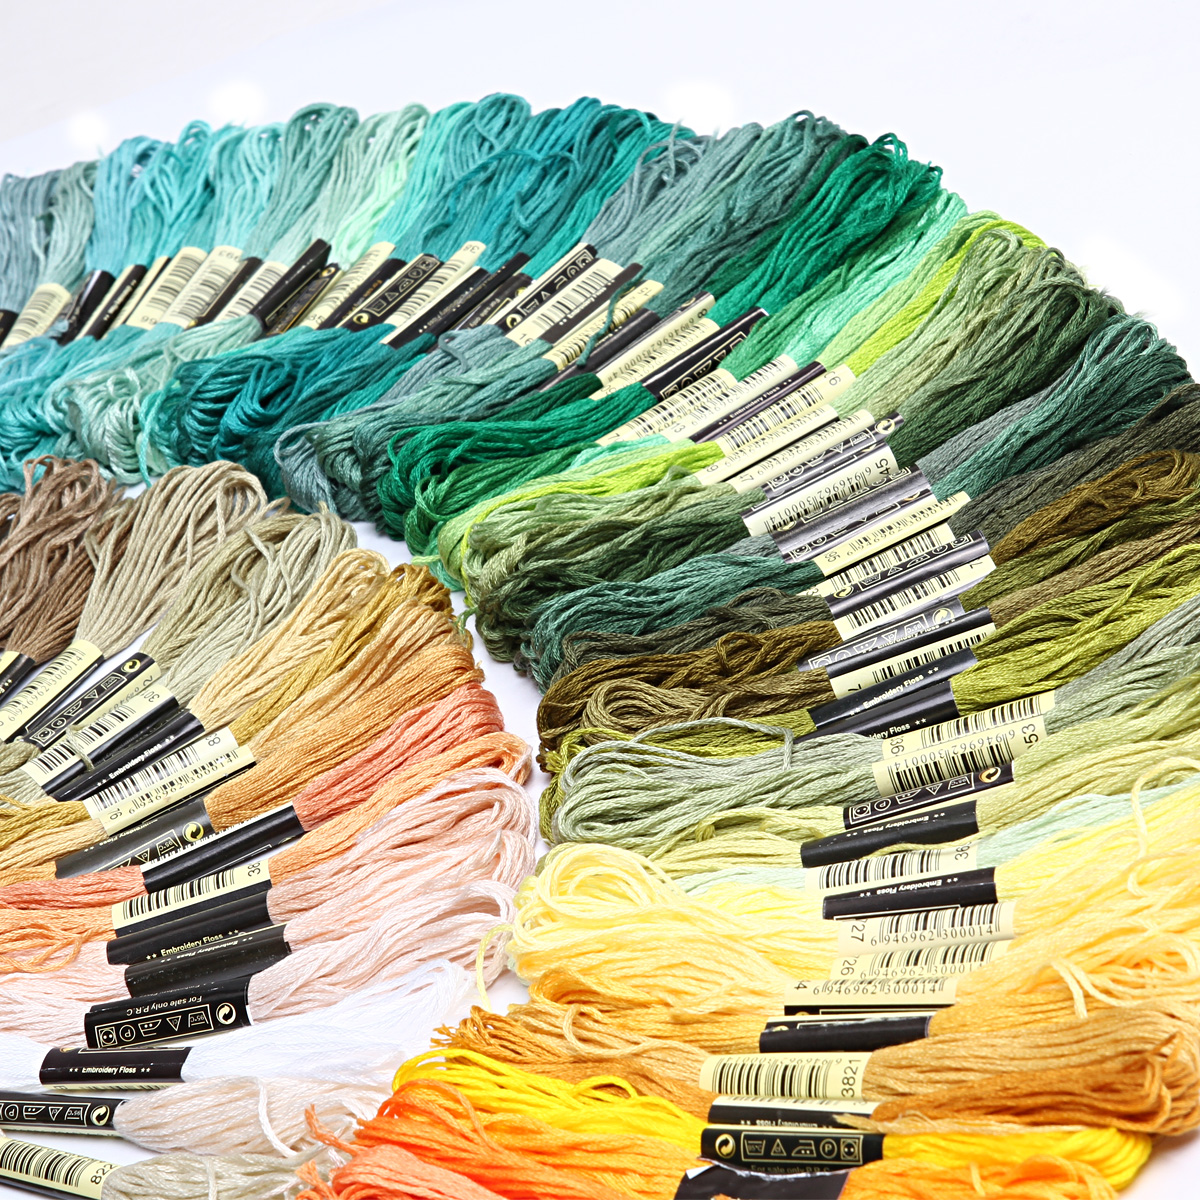 50-300-Color-Cross-Stitch-Thread-Embroidery-Floss-Sewing-Skeins-100-Cotton-Line thumbnail 4